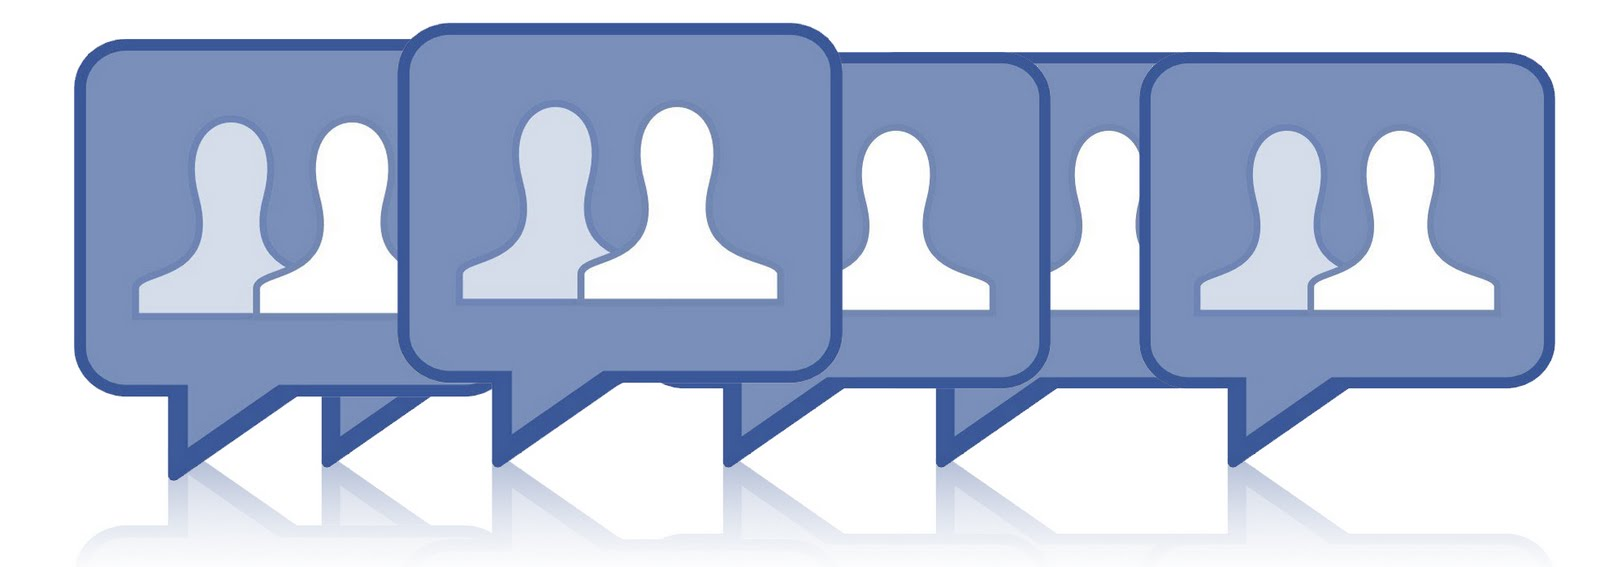 how to create a group within a facebook page